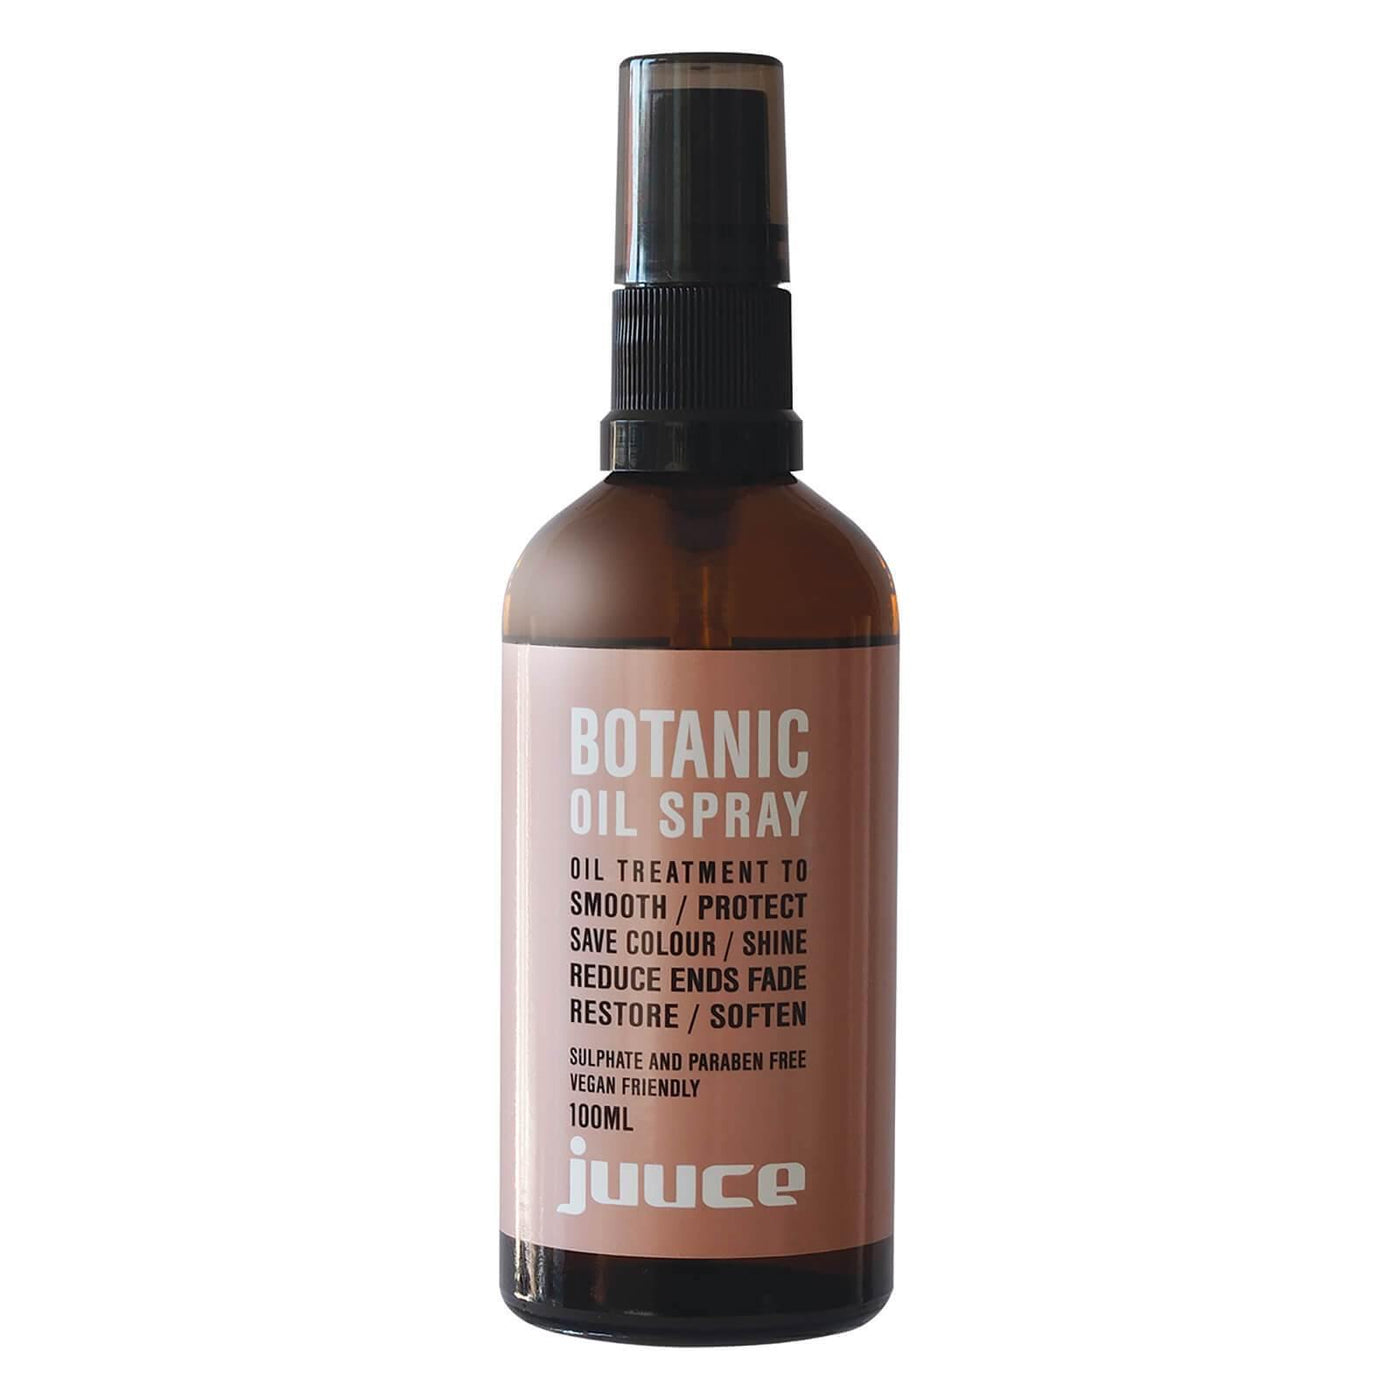 Juuce Botanic Oil Spray 100ml